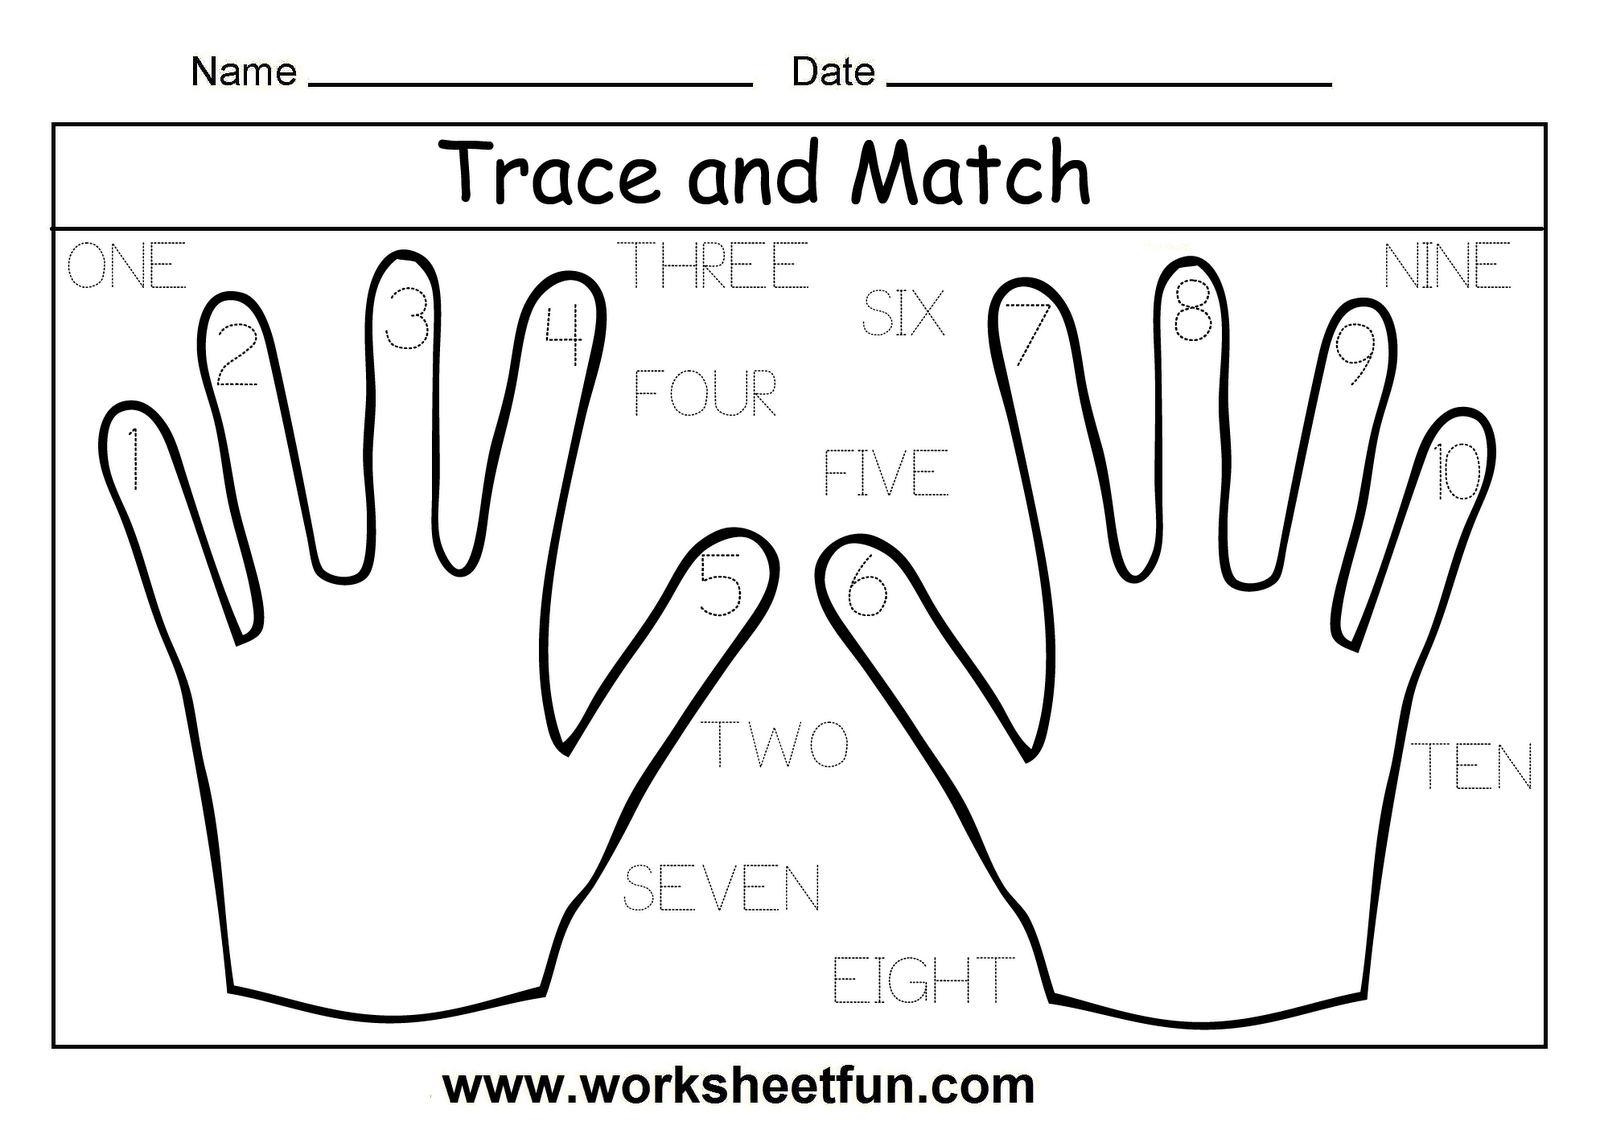 11 Best Images Of Worksheets Handwriting Number Ten